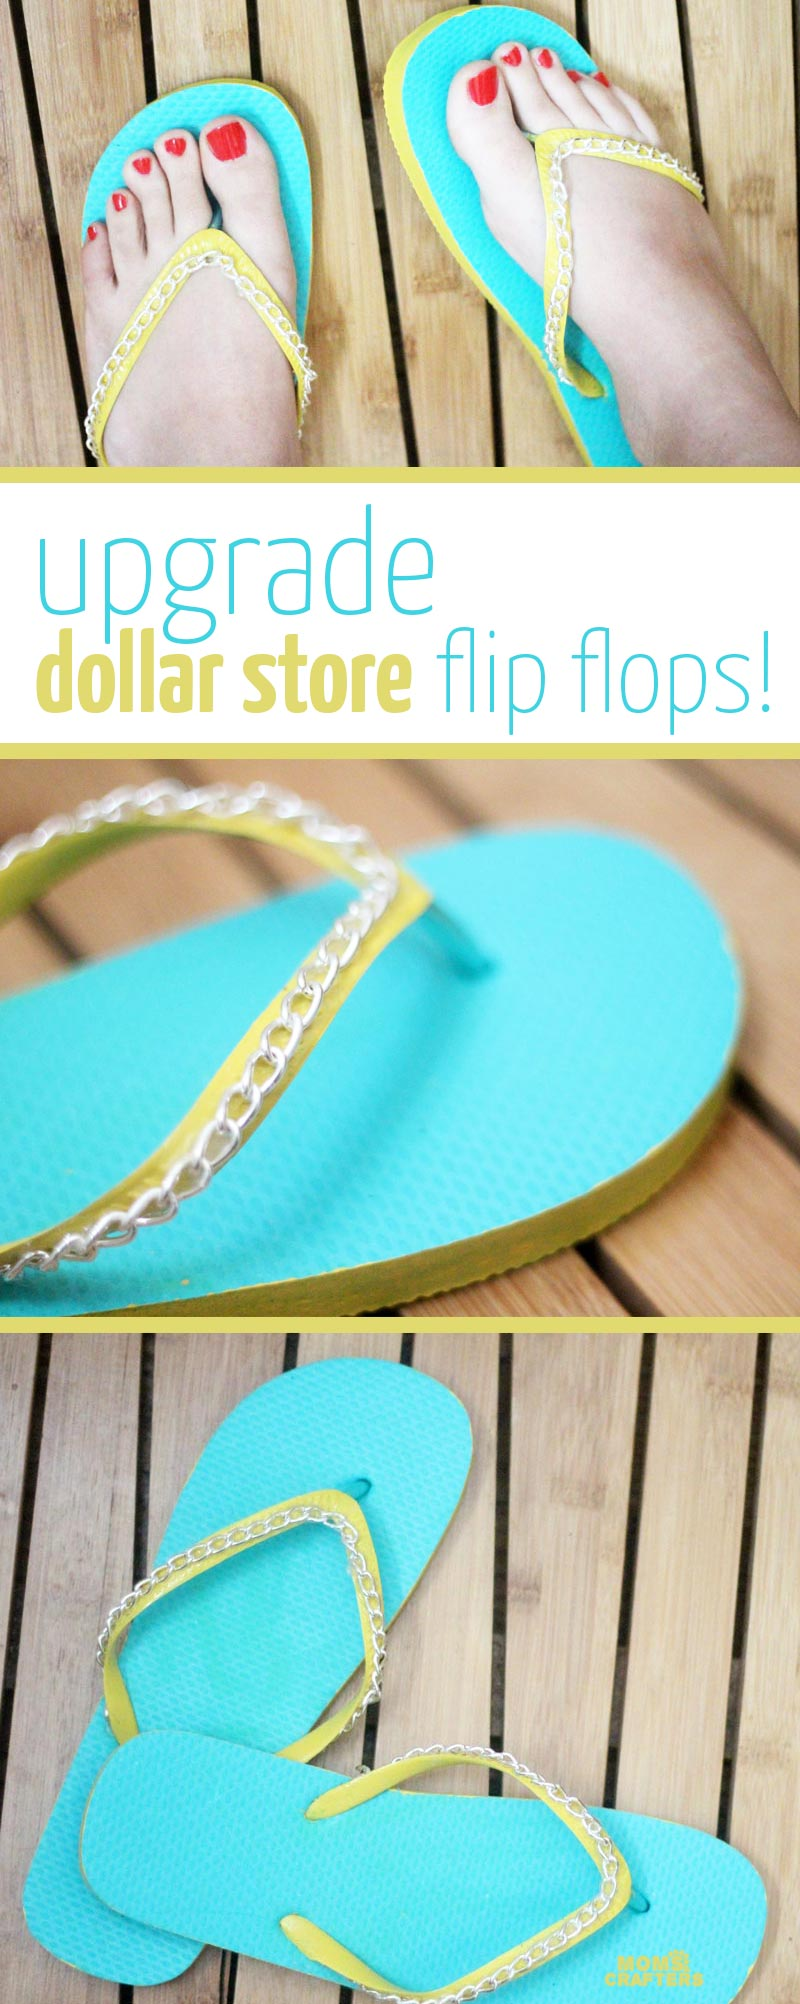 Make your cheap dollar store flip flops look super cool with these DIY flip flops - an easy summer camp craft for teens and tweens - or grown-ups too!